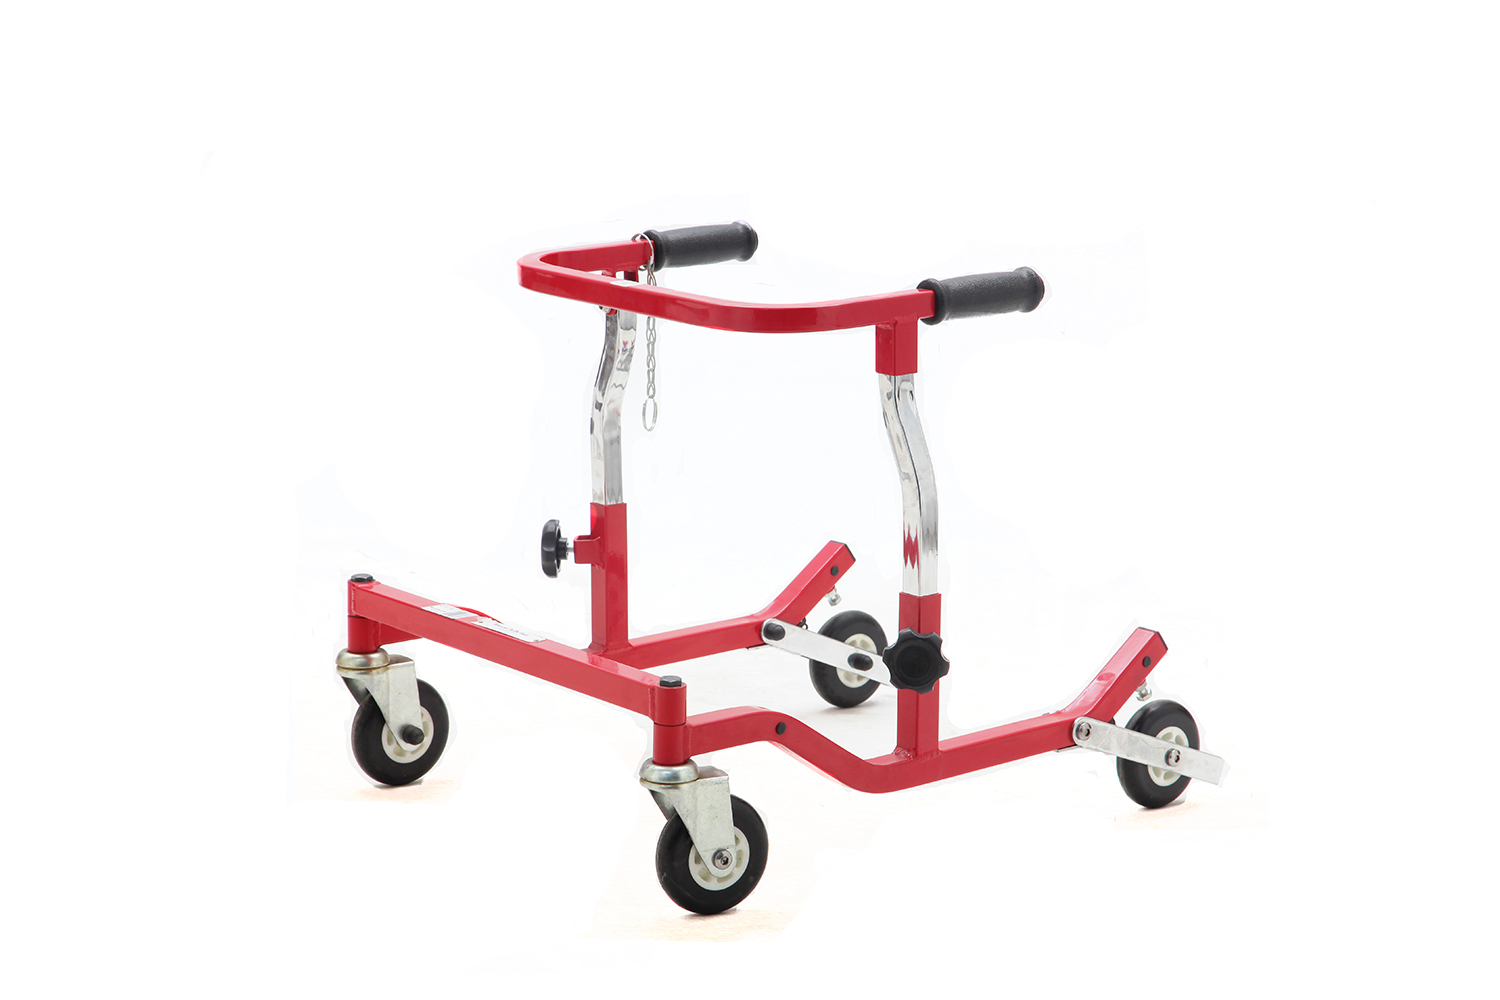 Pediatric Safety Roller